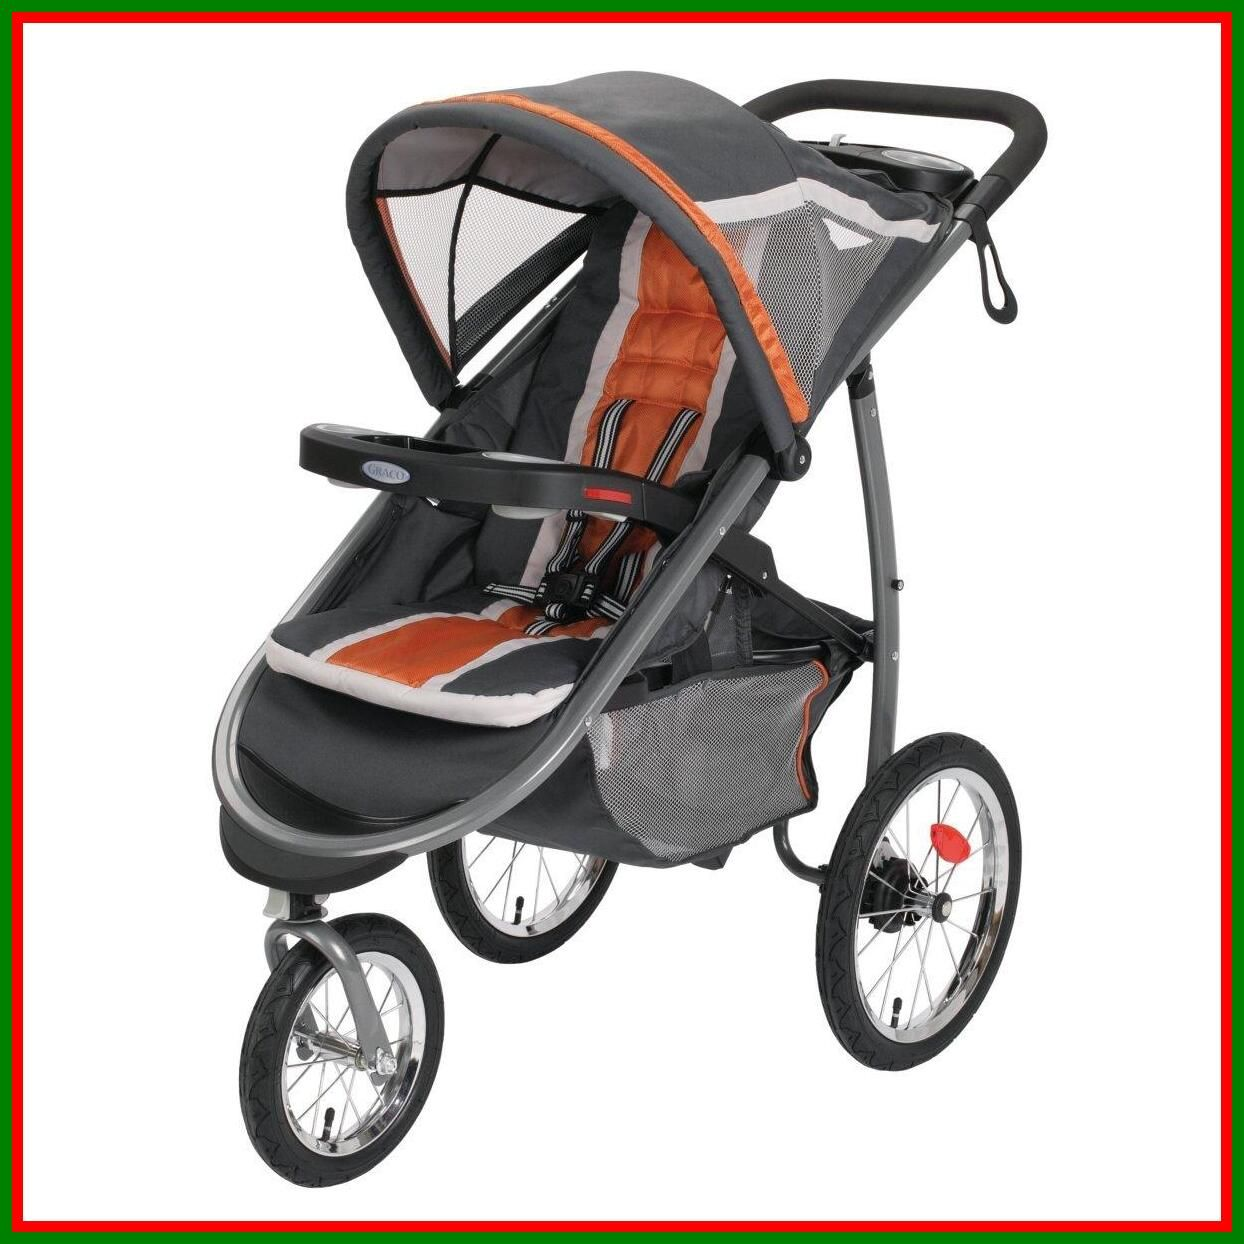 42++ Graco click connect stroller how to open information